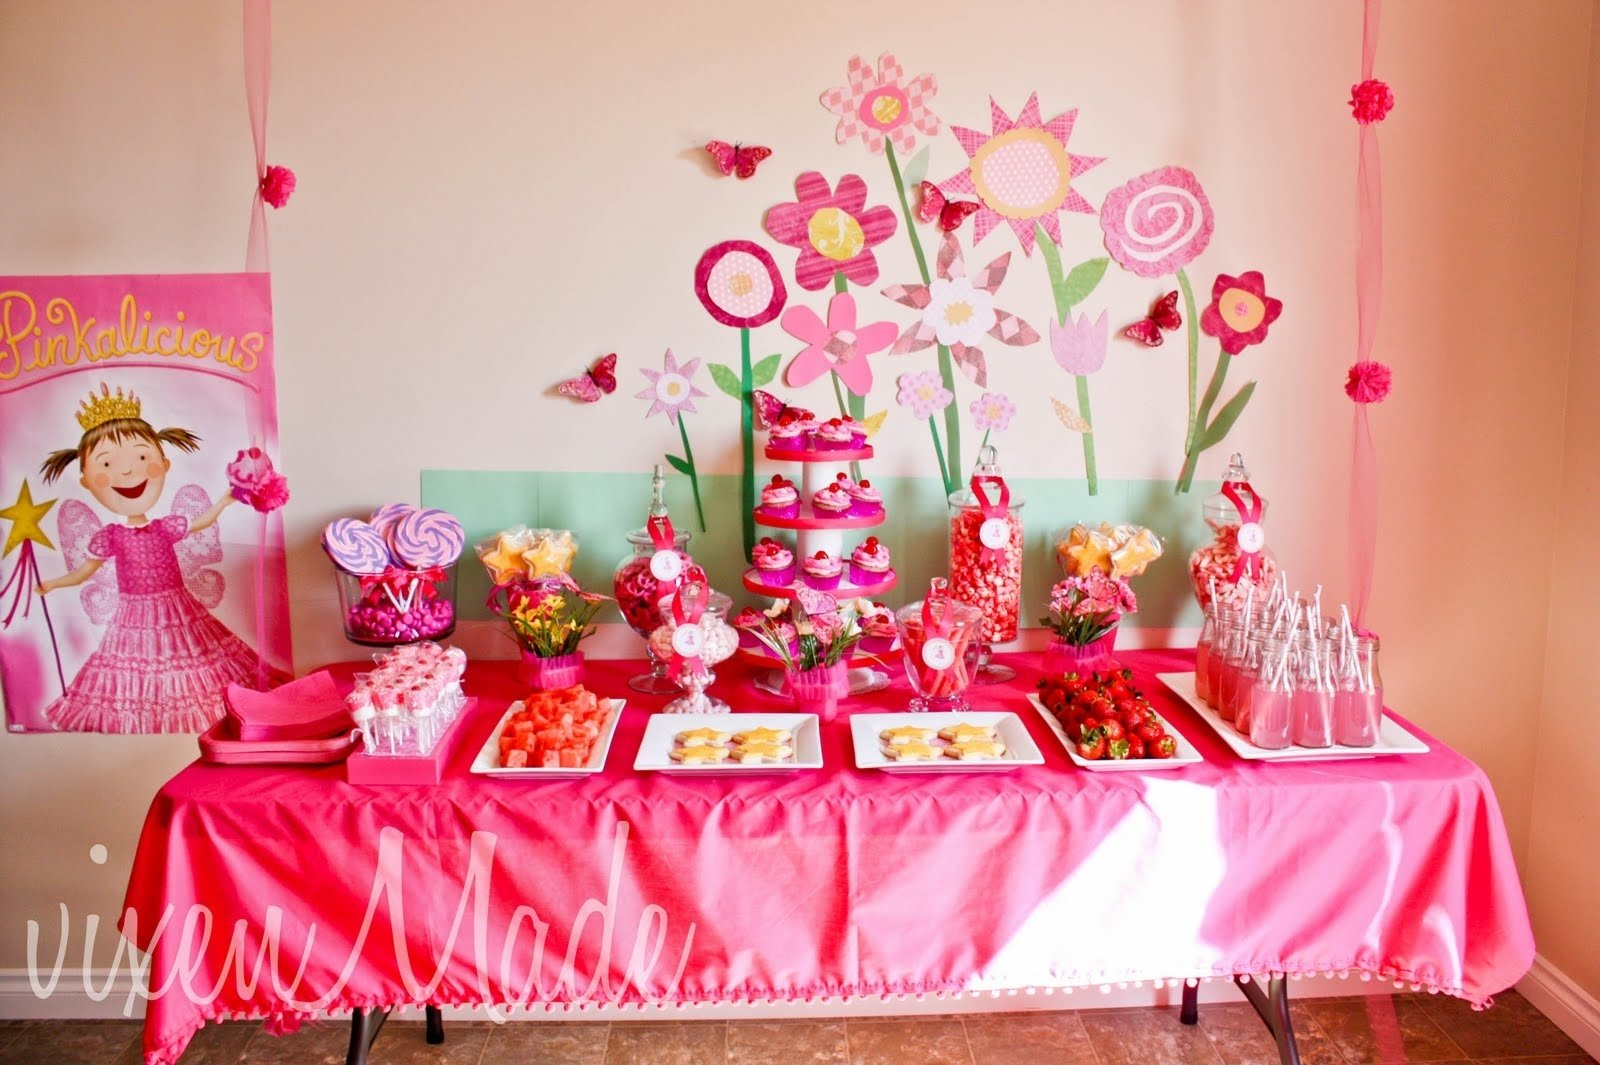 10 Fashionable 5Th Birthday Party Ideas For Girls 50 birthday party themes for girls i heart nap time 13 2020